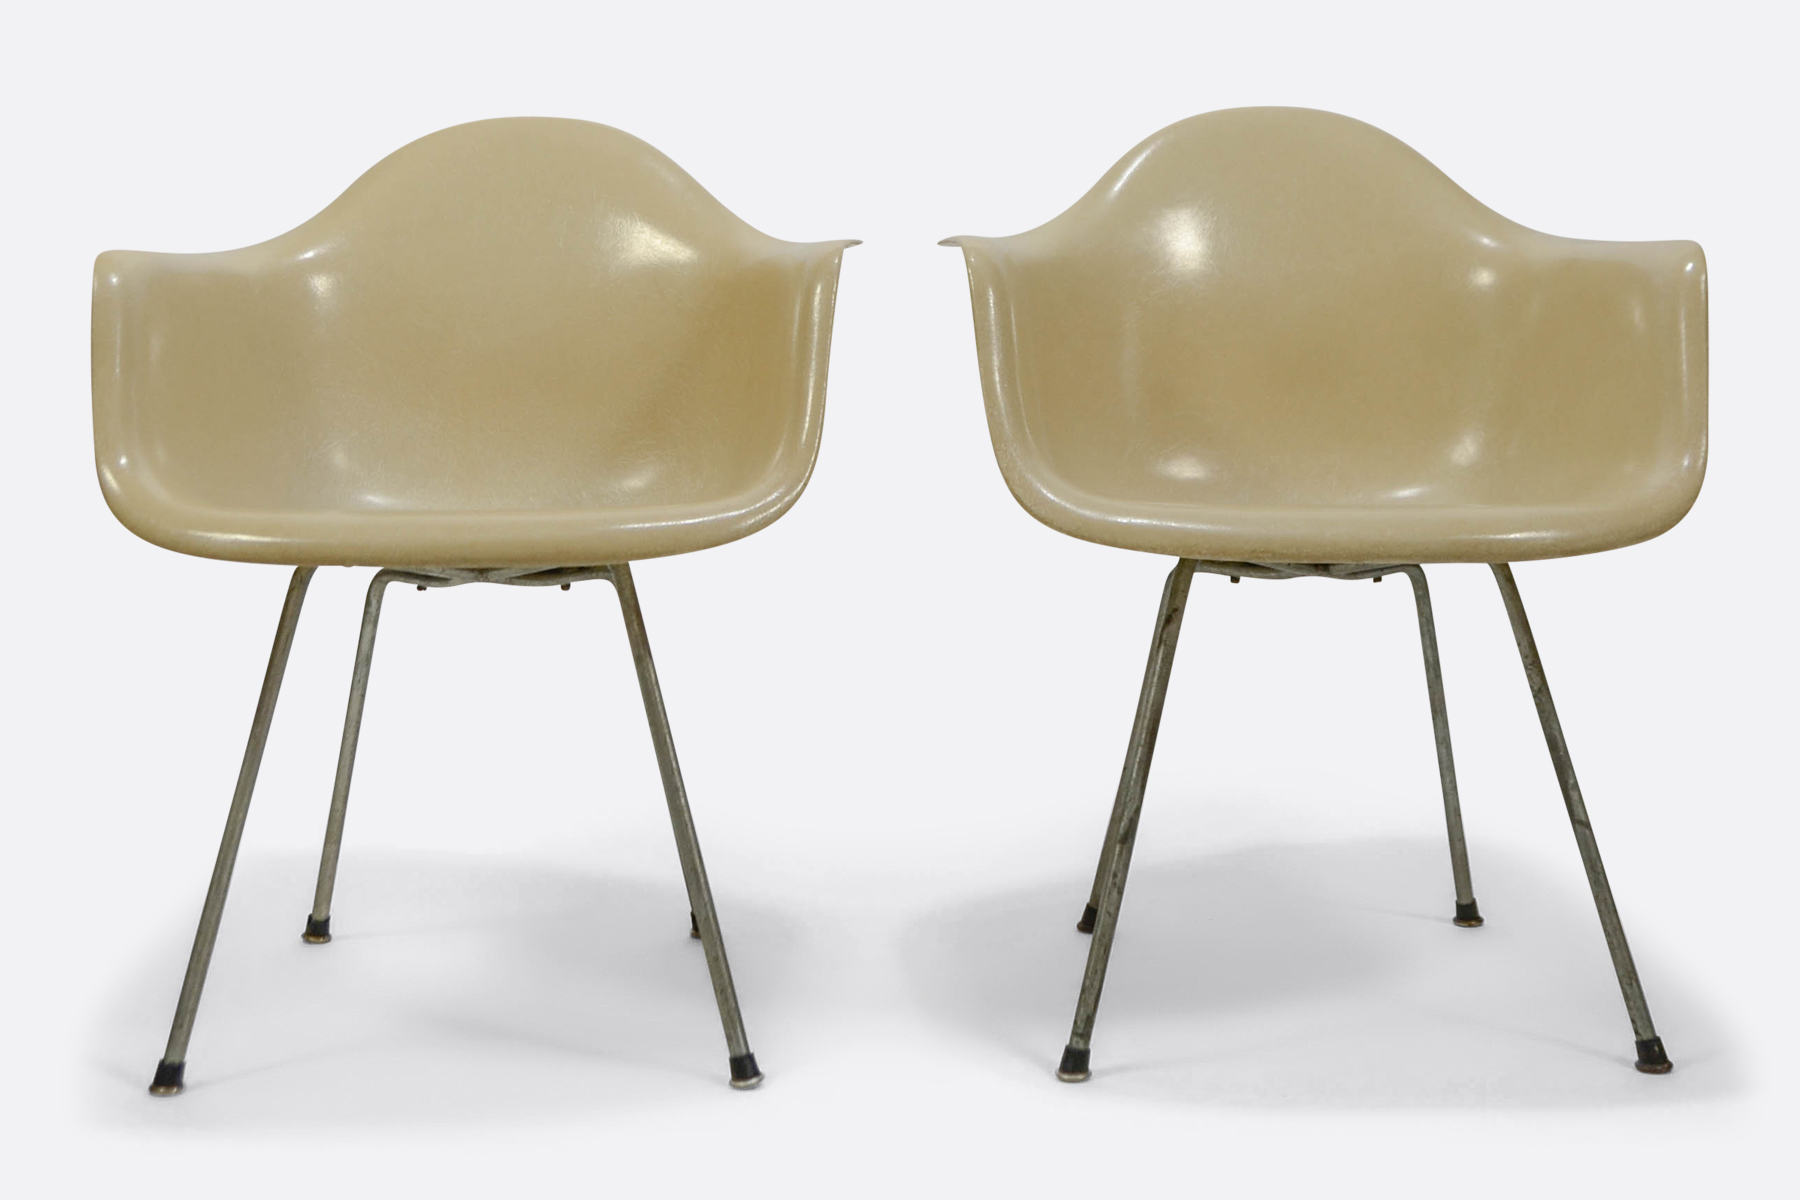 Eames DAX set of 2 - Off White - Zenith Plastic1